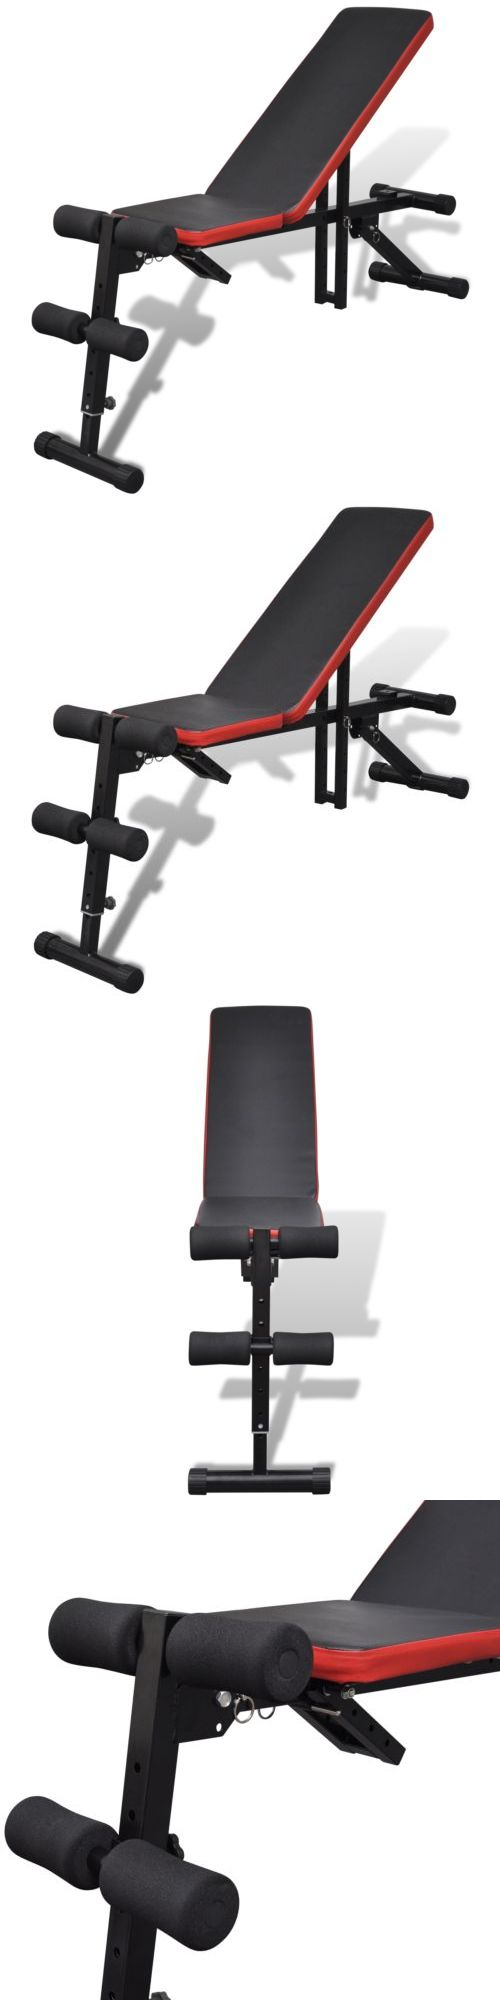 Bench Press Abs Part - 31: Benches 15281: Adjustable Foldable Sit Up Ab Incline Abs Bench Flat Weight  Press Gym Exercise